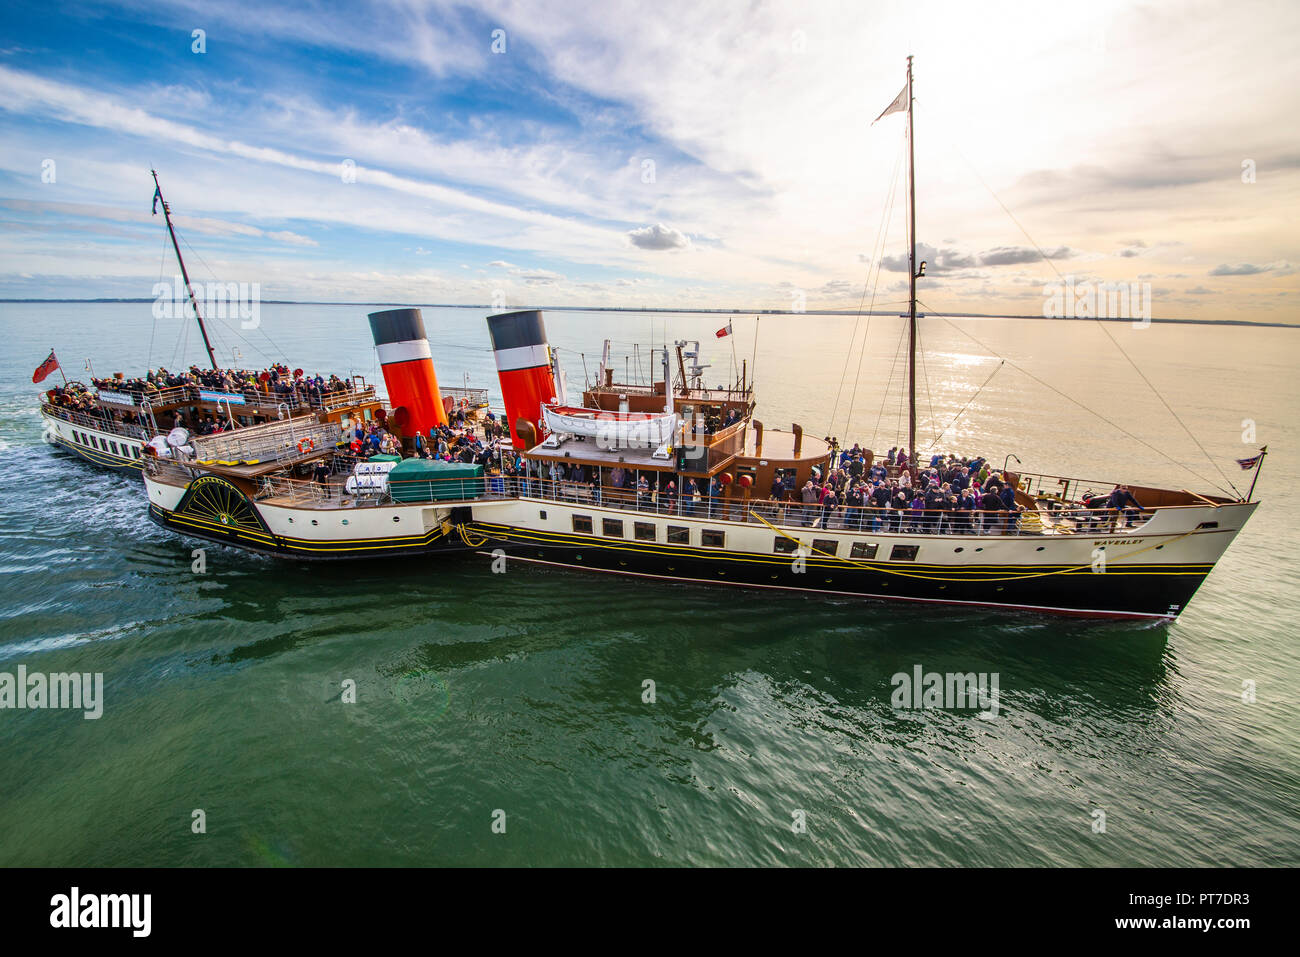 paddle-steamer-waverley-approaching-southend-pier-on-the-thames-estuary-with-passengers-ready-to-disembark-and-to-collect-further-day-trippers-space-for-copy-PT7DR3.jpg